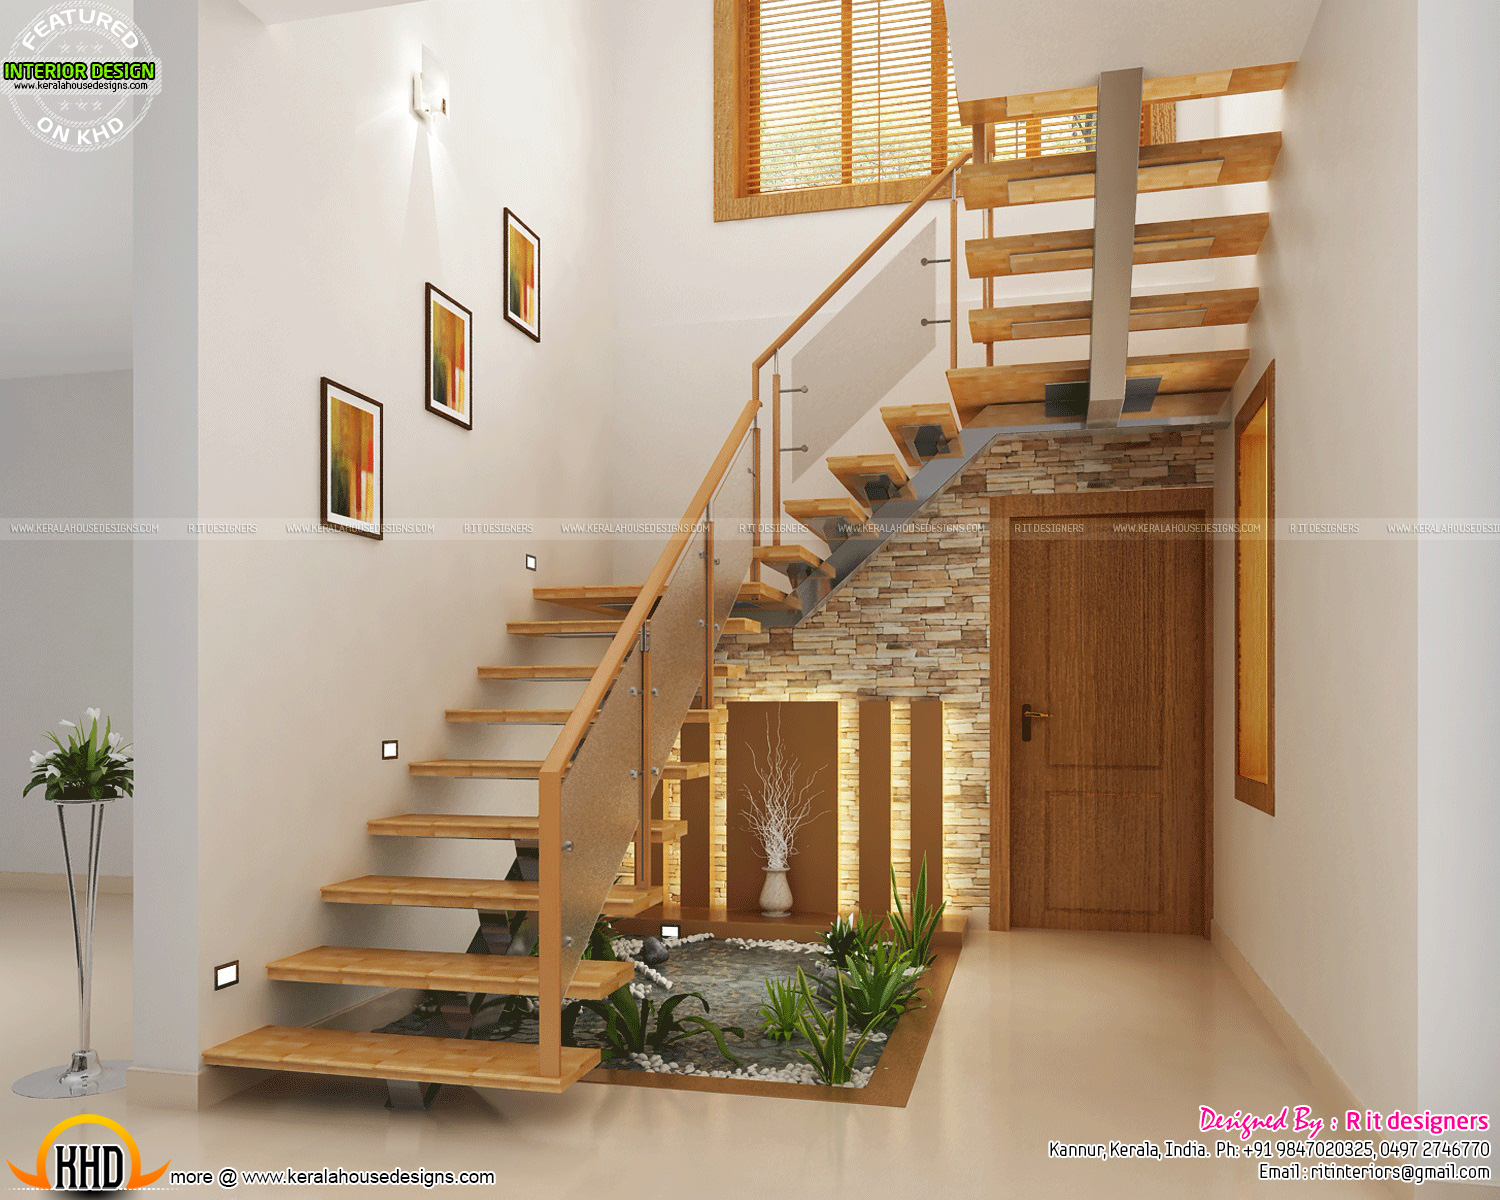 Under stair design wooden stair kitchen and living - Stairs design inside house ...